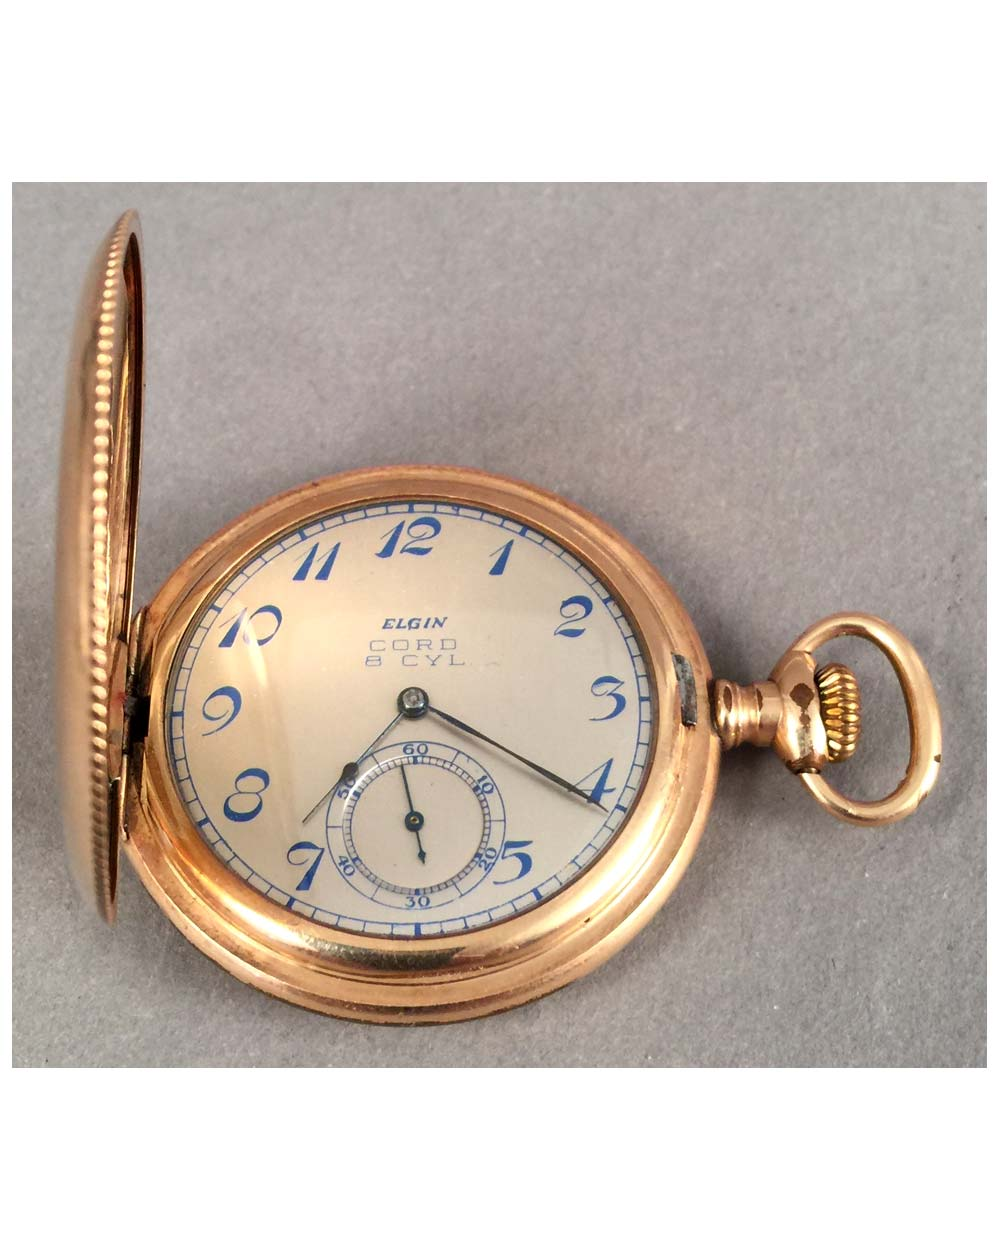 Cord 8 Cyl. pocket watch By Elgin, ca. 1930's